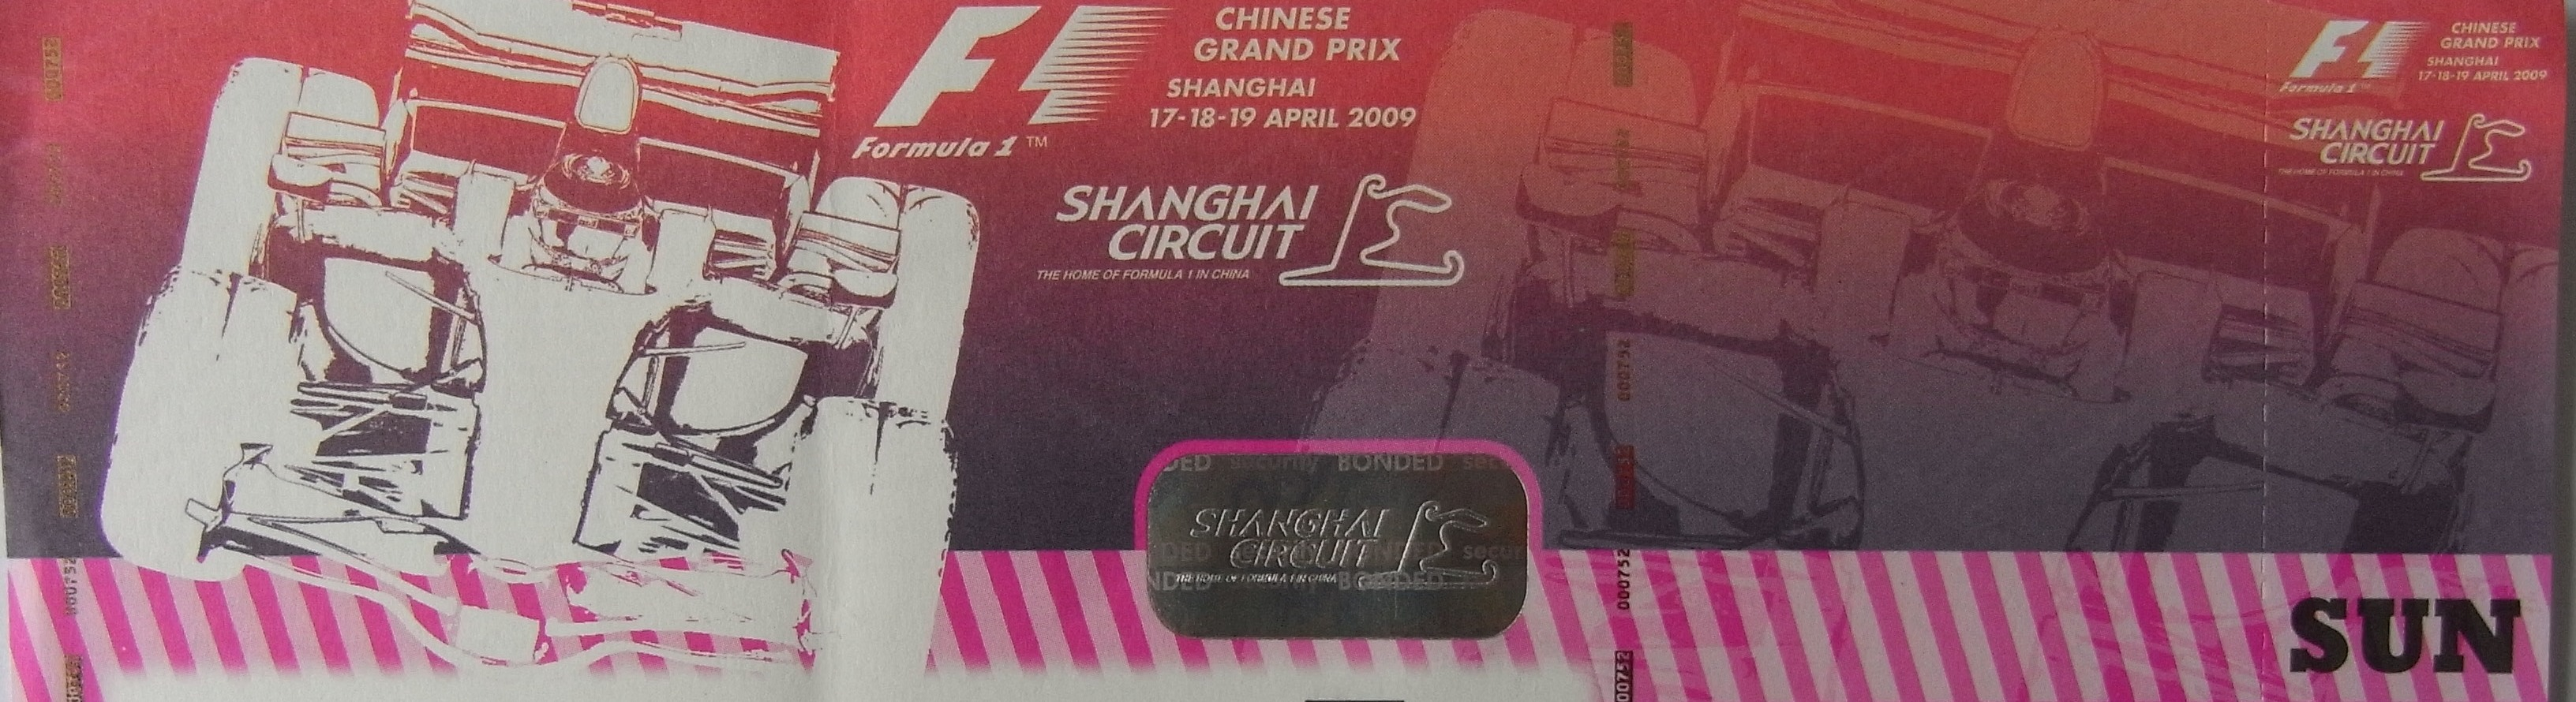 F1 Ticket Shanghai